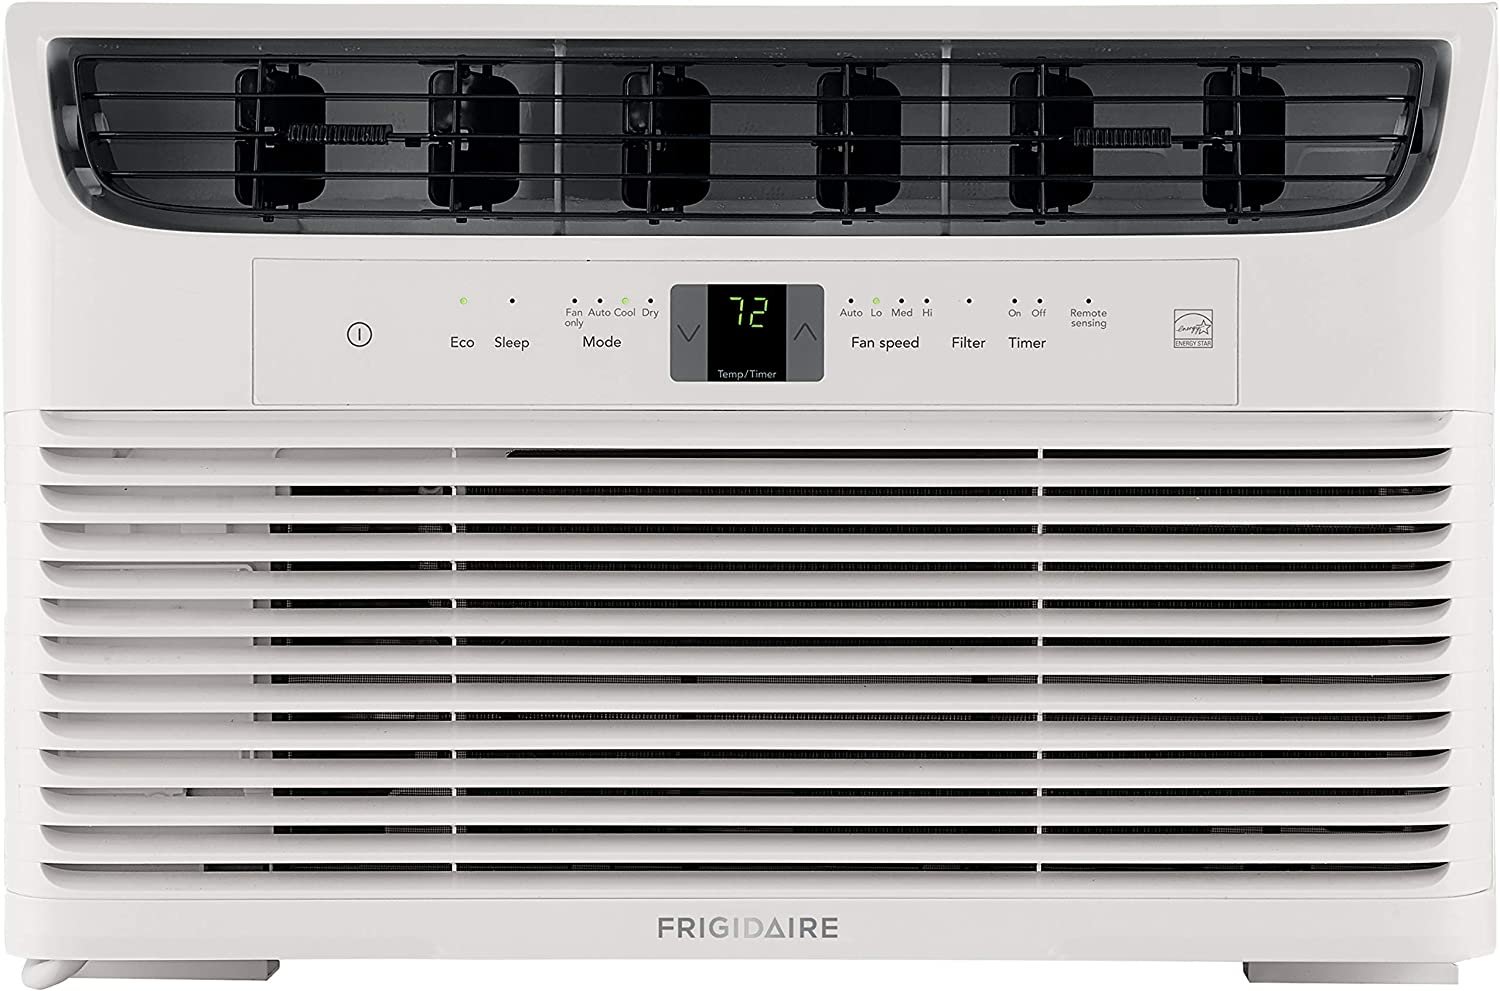 FRIGIDAIRE Energy Star 6,000 BTU 115V Window-Mounted Mini-Compact Air Conditioner with Full-Function Remote Control, White